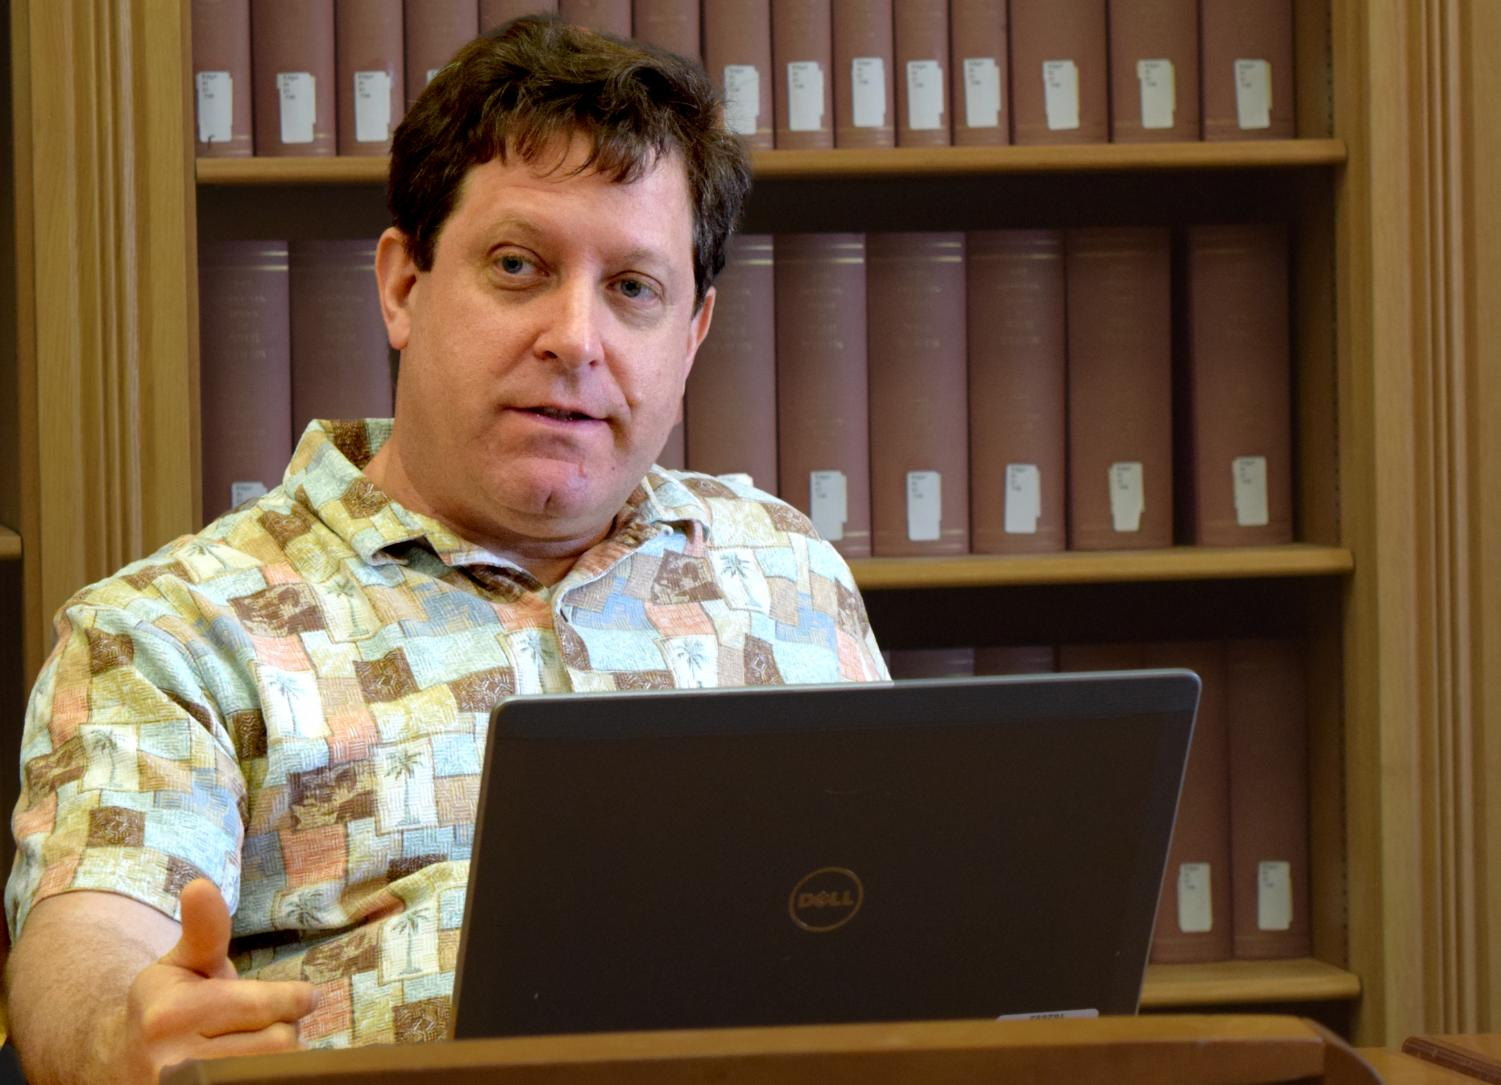 Geography professor Barry Kronenfeld is a member of the Council for Academic Affairs. The council approved lowering two course numbers for the computer and information technology department, and it also looked at an accelerated law degree program.